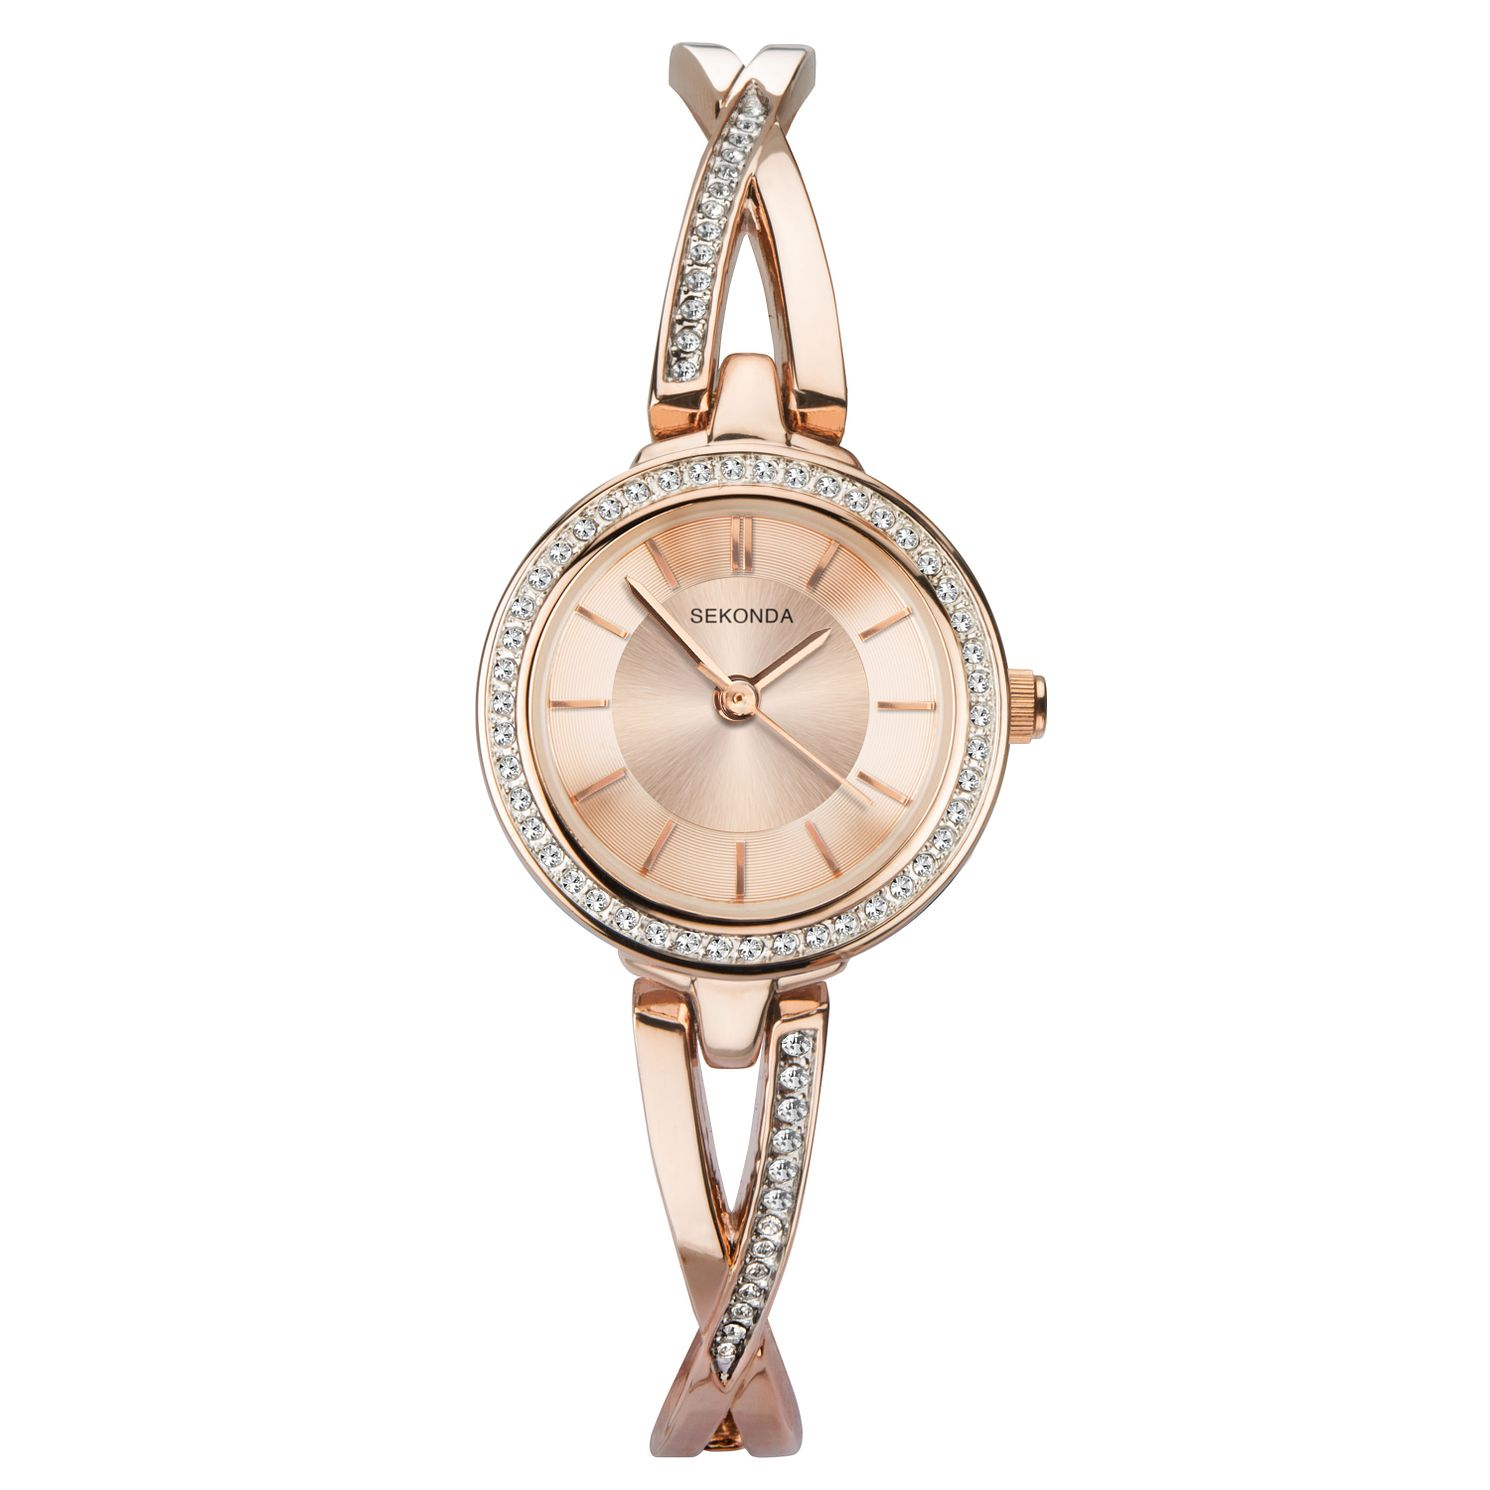 Sekonda Ladies' Rose Gold Tone Bangle Bracelet Watch - Product number 9794328